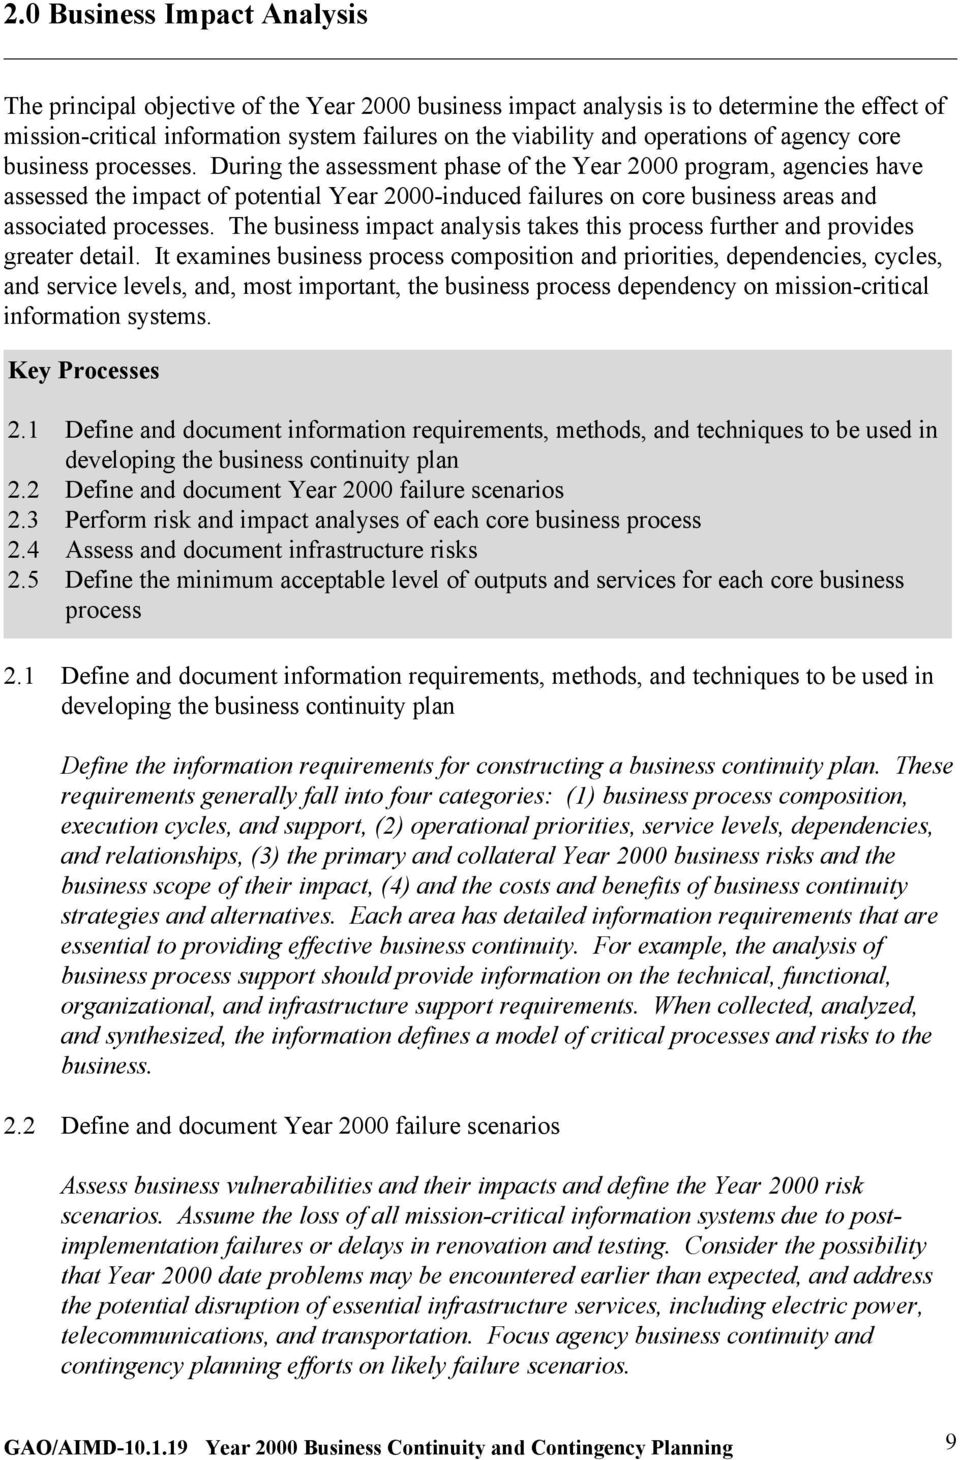 During the assessment phase of the Year 2000 program, agencies have assessed the impact of potential Year 2000-induced failures on core business areas and associated processes.